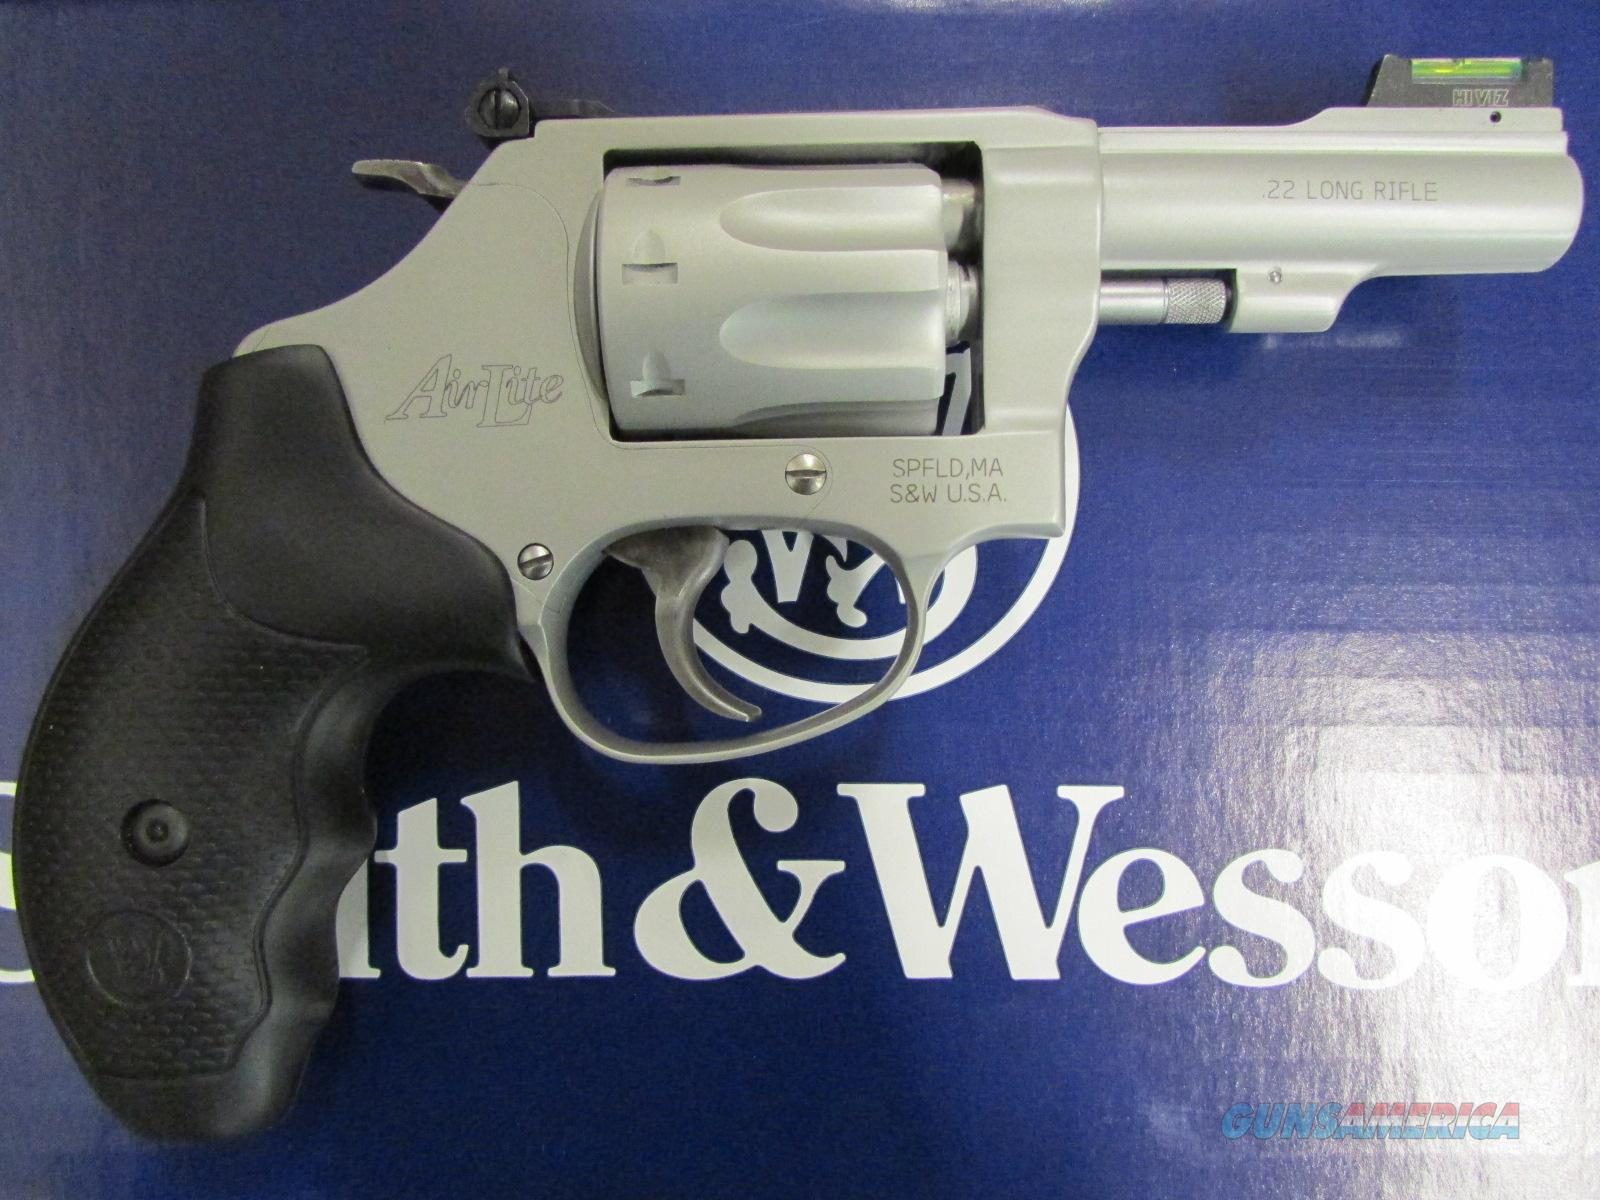 Smith & Wesson Model 317 Kit Gun Airweight 8-Shot .22 Long Rifle  Guns > Pistols > Smith & Wesson Revolvers > Pocket Pistols